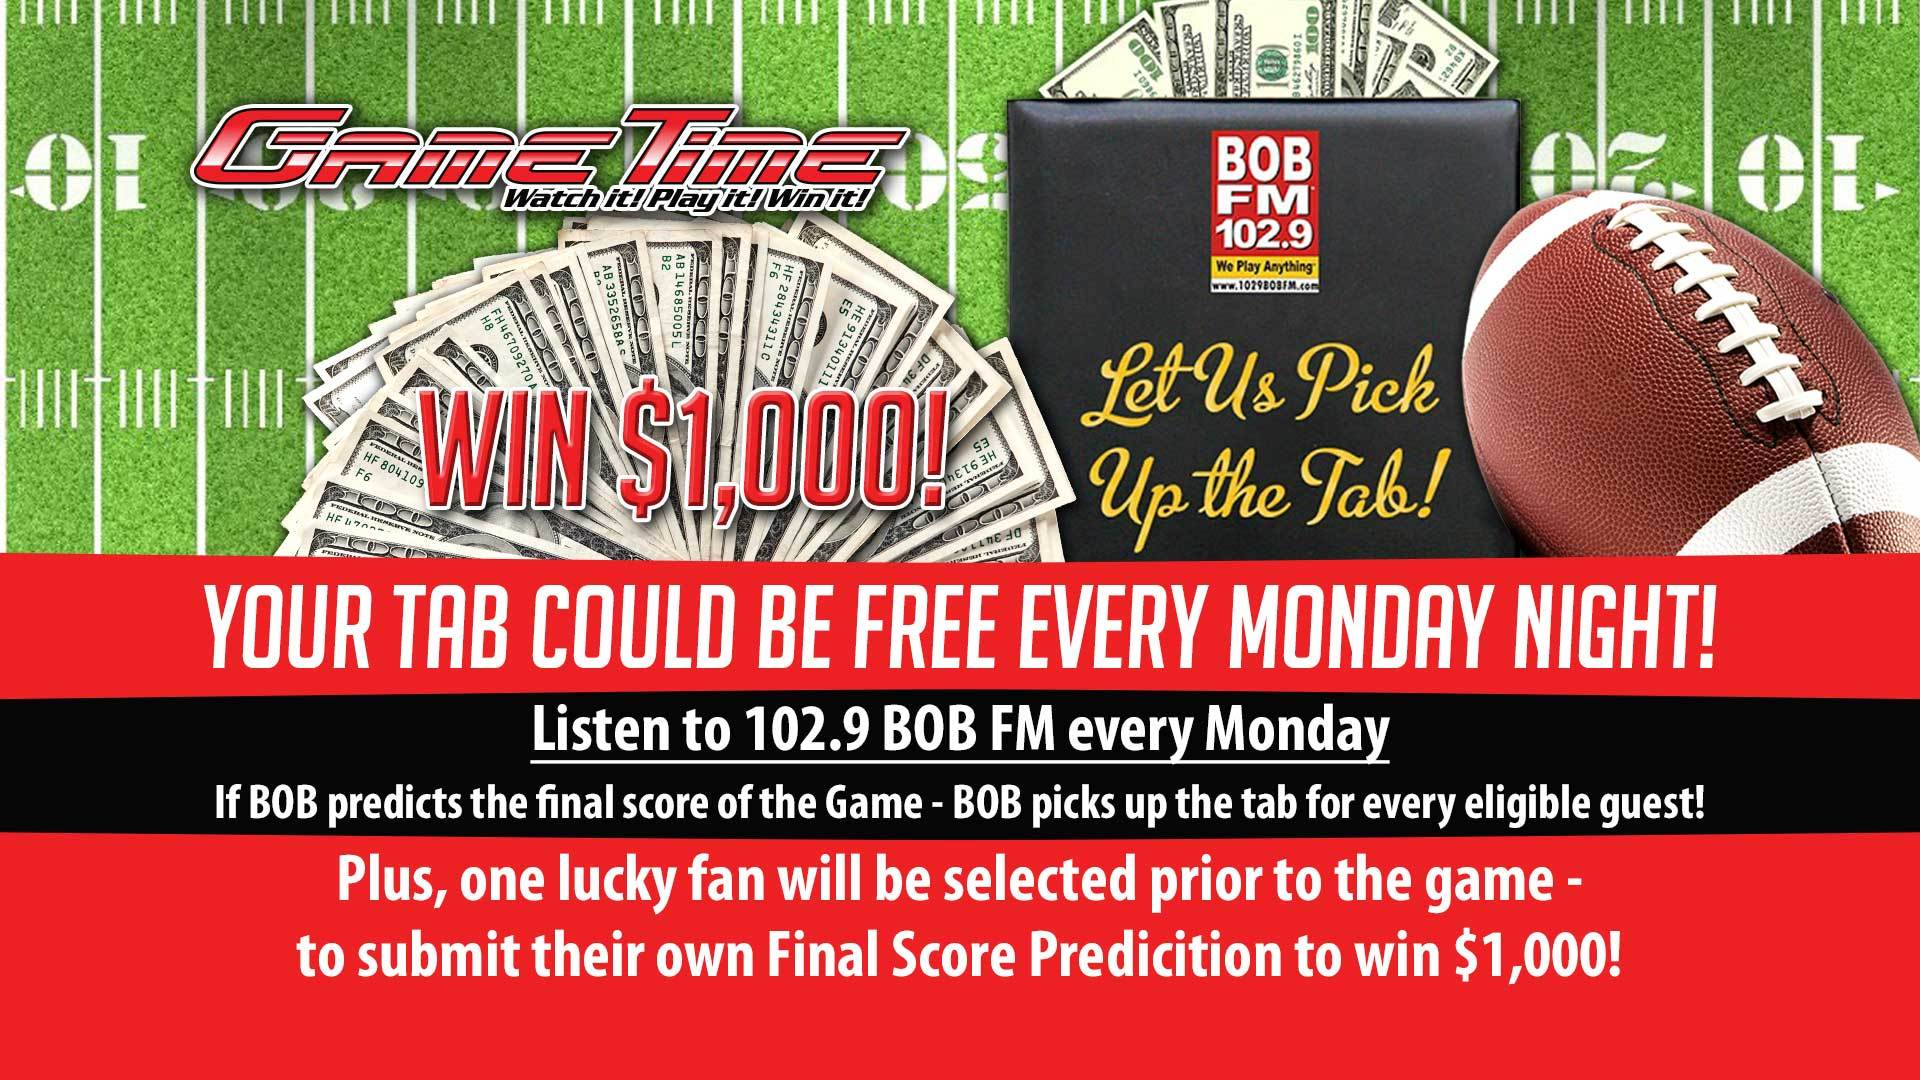 Watch Monday Night Football at GameTime and win Big with BOB FM